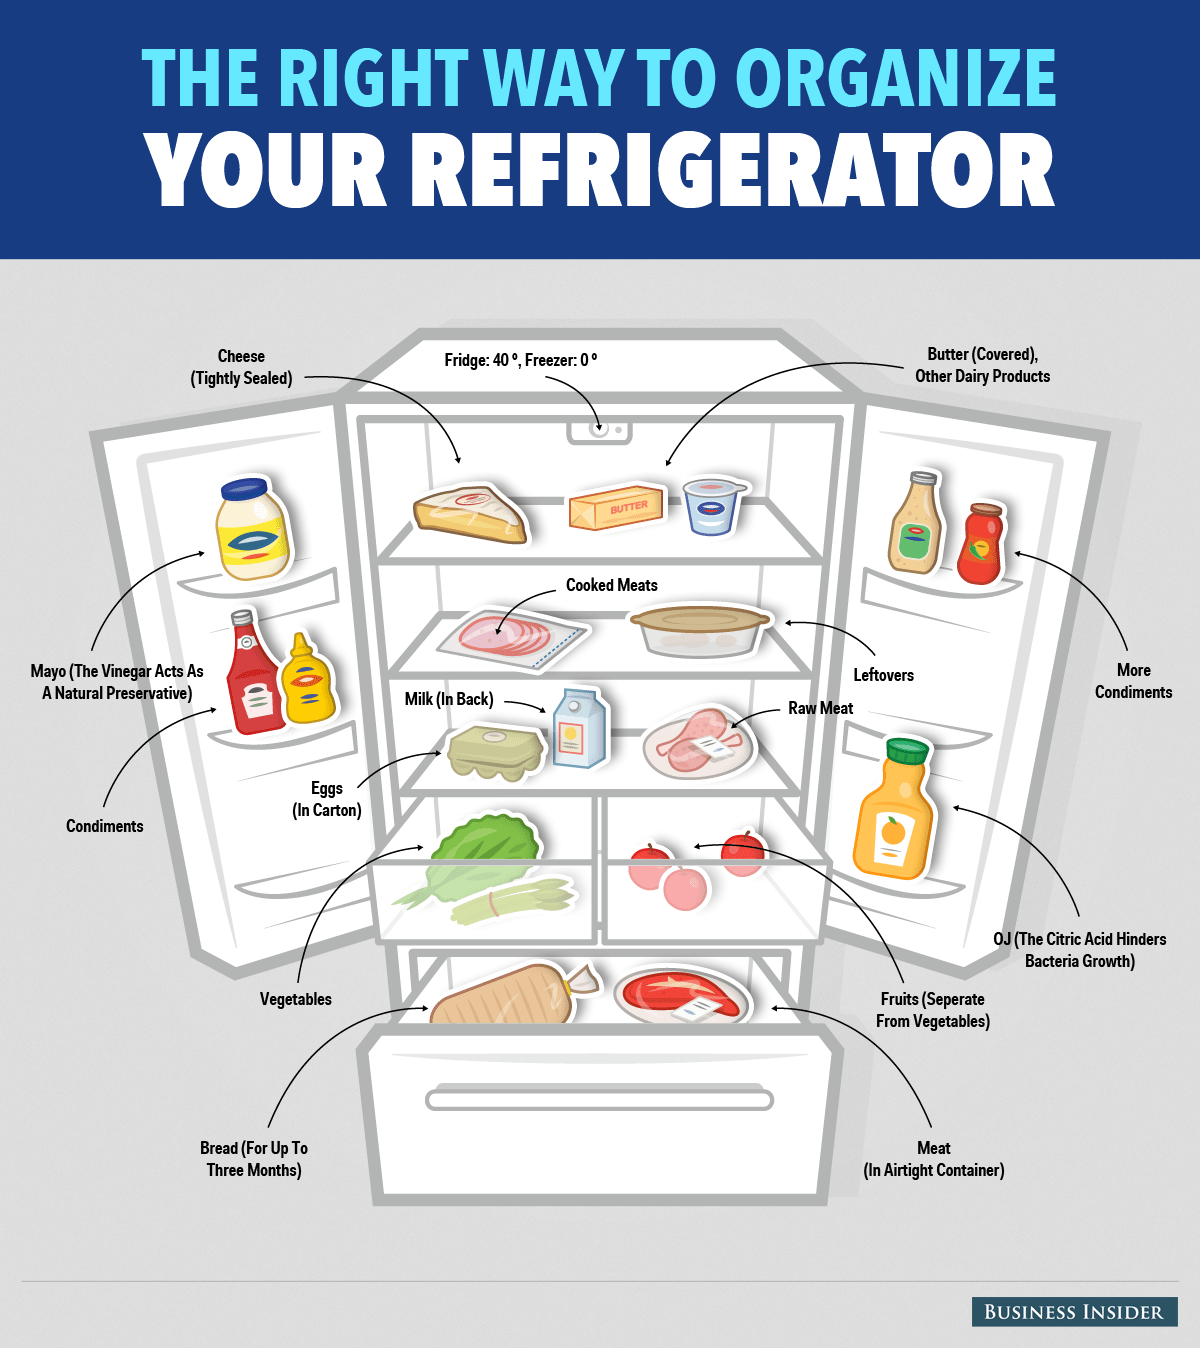 Here S The Right Way To Organize Your Refrigerator